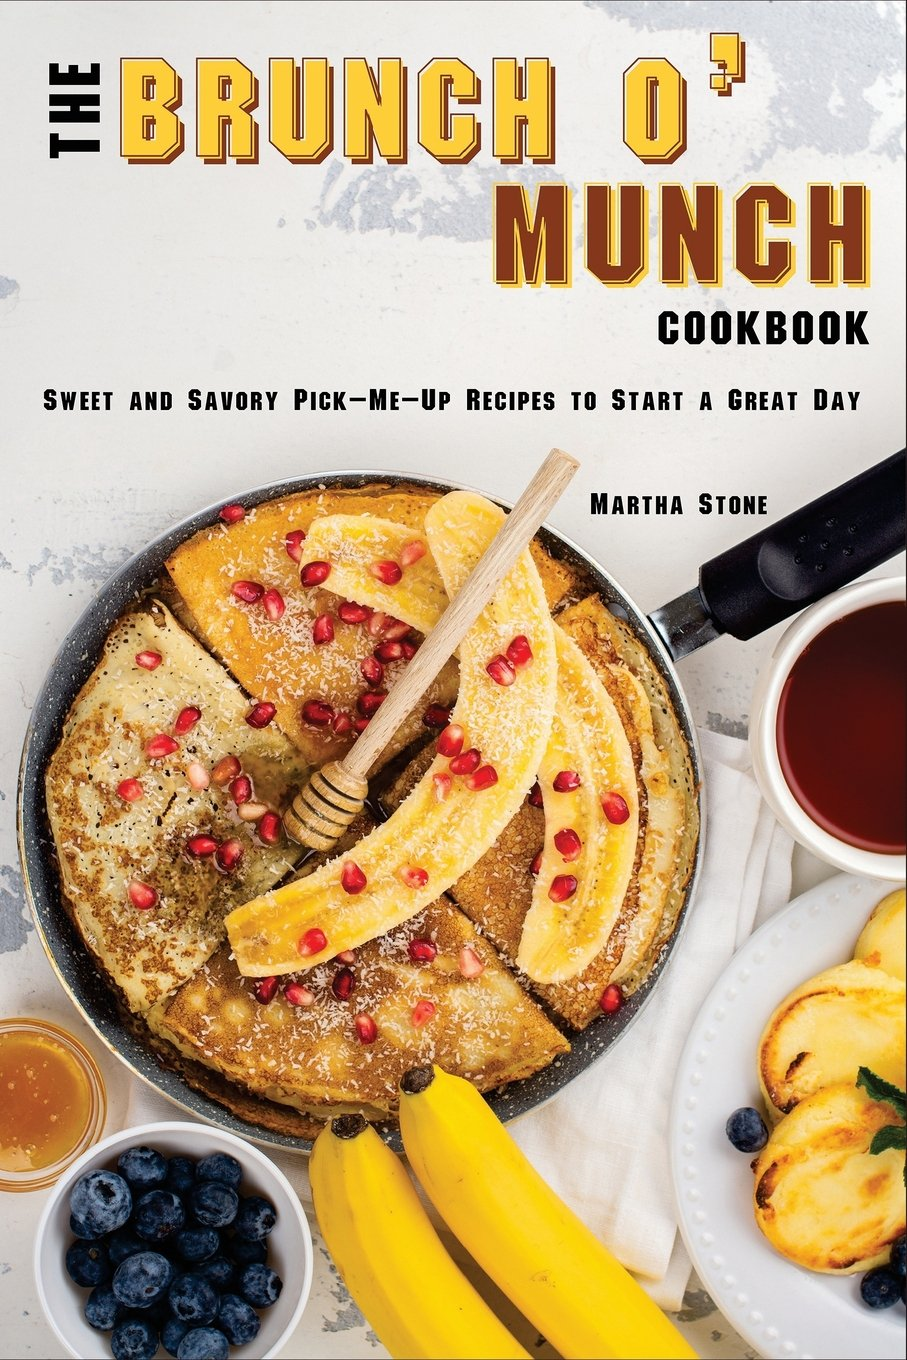 Download The Brunch o' Munch Cookbook: Sweet and Savory Pick-Me-Up Recipes to Start a Great Day PDF